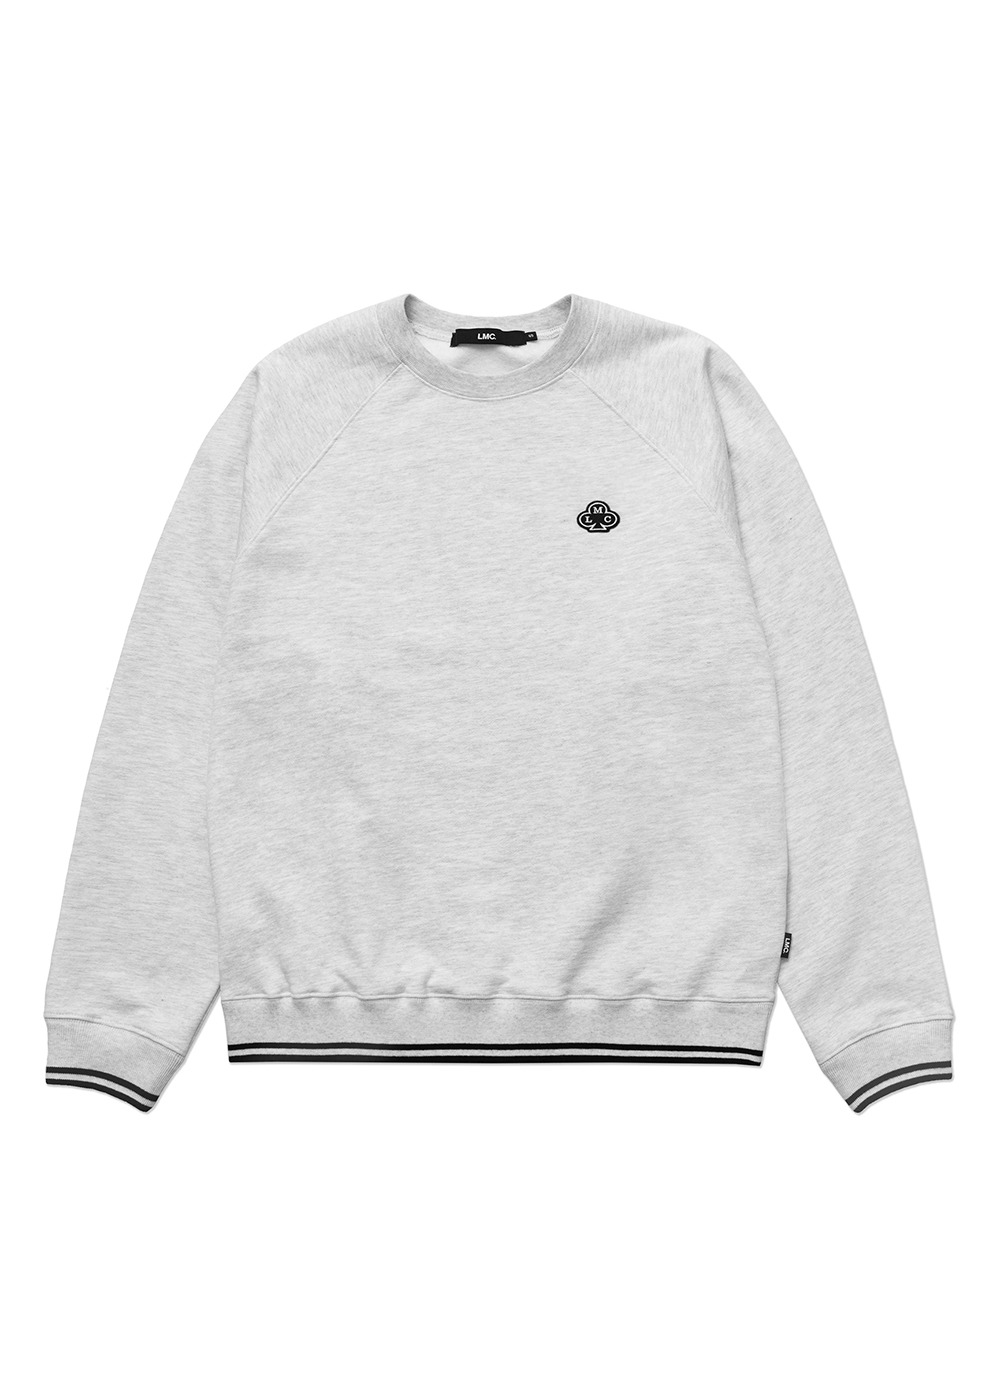 LMC CLUB BASIC RAGLAN SWEATSHIRT lt. heather gray